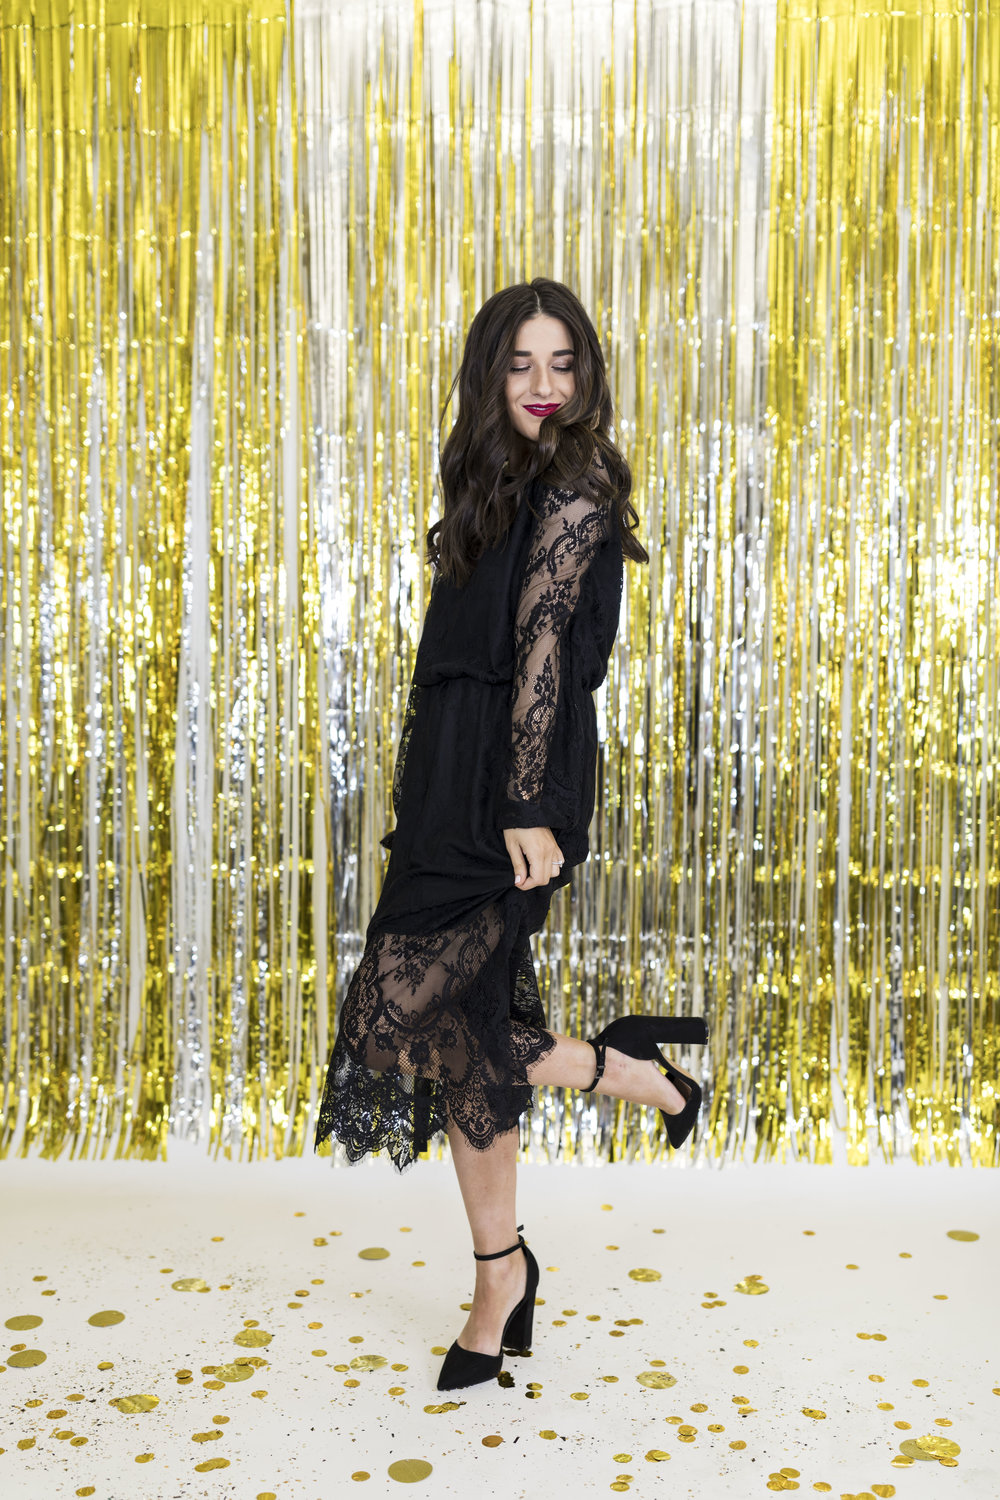 H&M Holiday Video Collab Esther Santer Fashion Blog NYC Street Style Blogger Outfit OOTD Trendy Confetti Streamers Balloons Presents Gift Wrap Shopping Wear Stylist Photoshoot Sweater Plaid Skirt DryBar Hairstyle Friends Girls Lace Jewelry Accessories.jpg